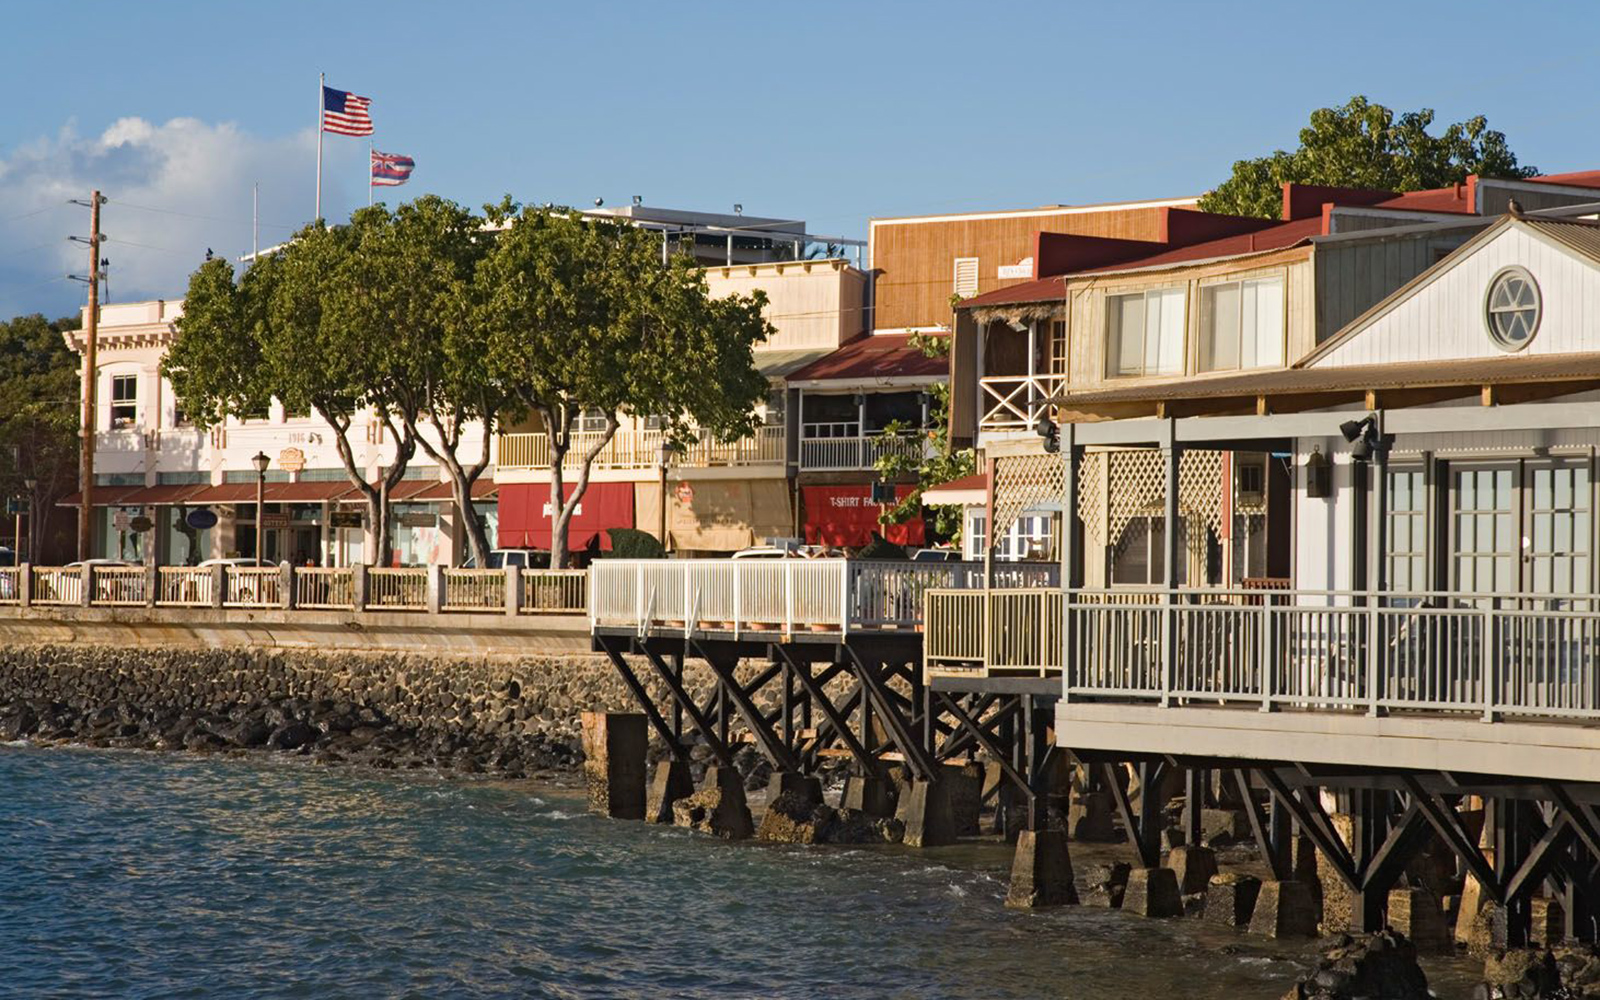 America's Best Towns for July 4th: Lahaina